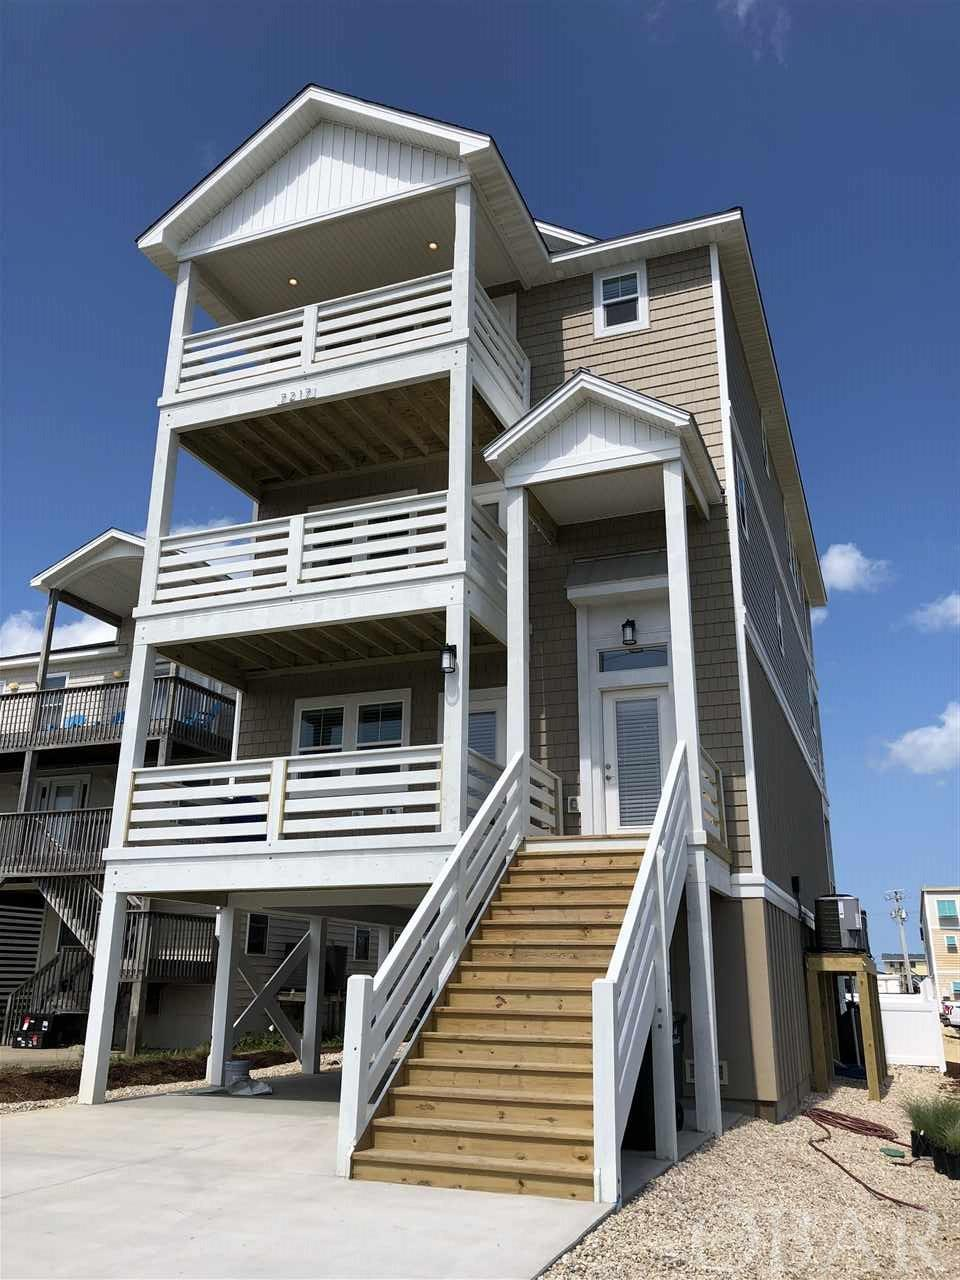 7217 Croatan Highway, Nags Head, NC 27959, 5 Bedrooms Bedrooms, ,4 BathroomsBathrooms,Residential,For sale,Croatan Highway,104912